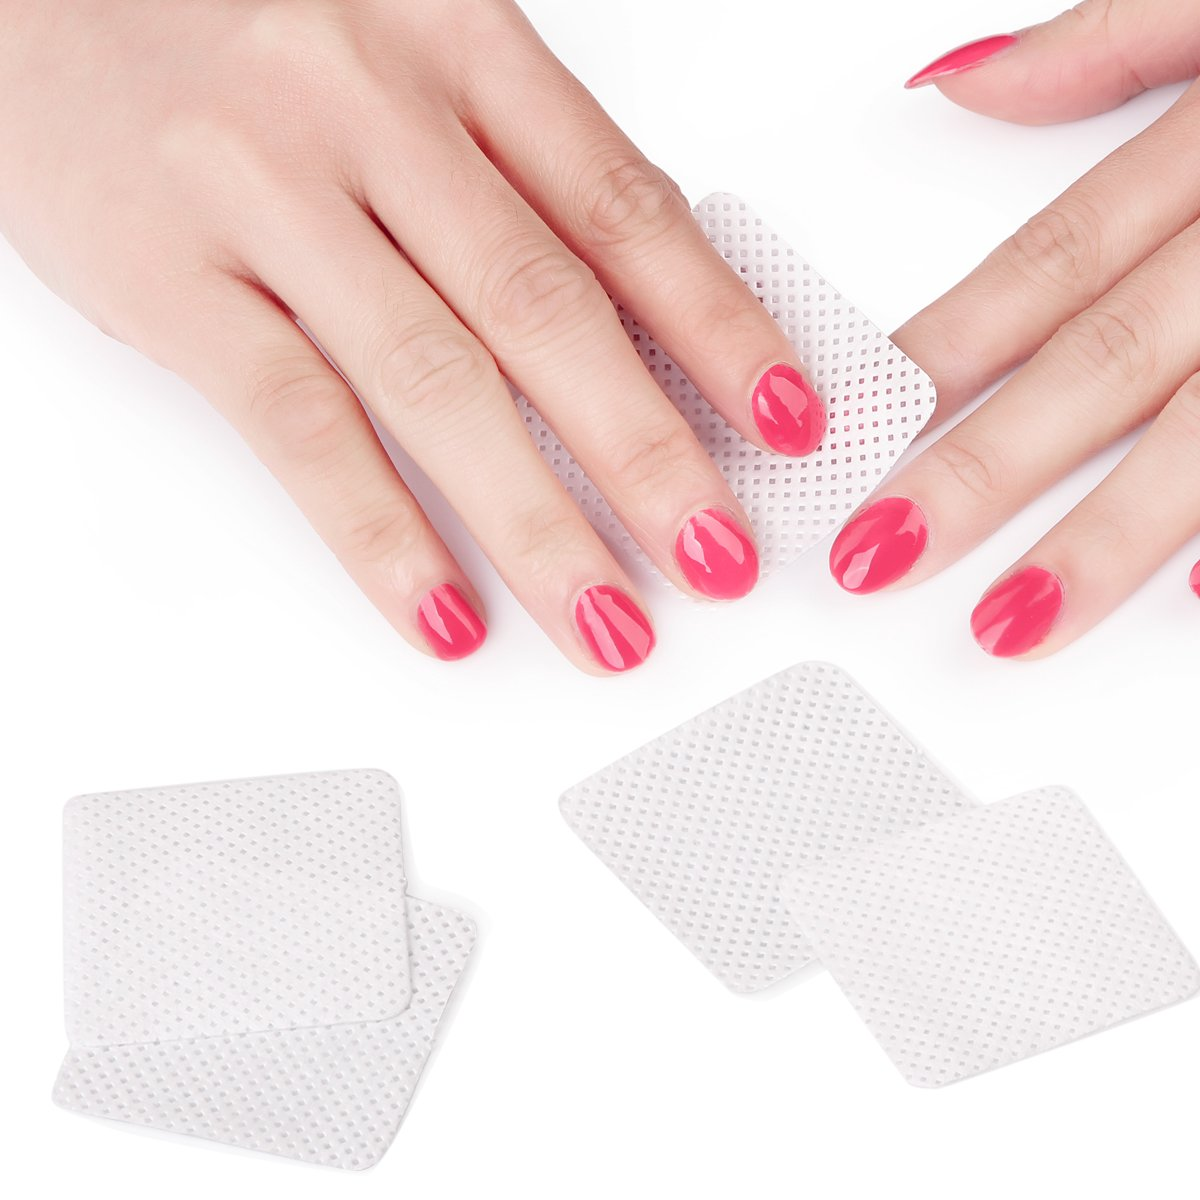 Neat and original manicure without any problems